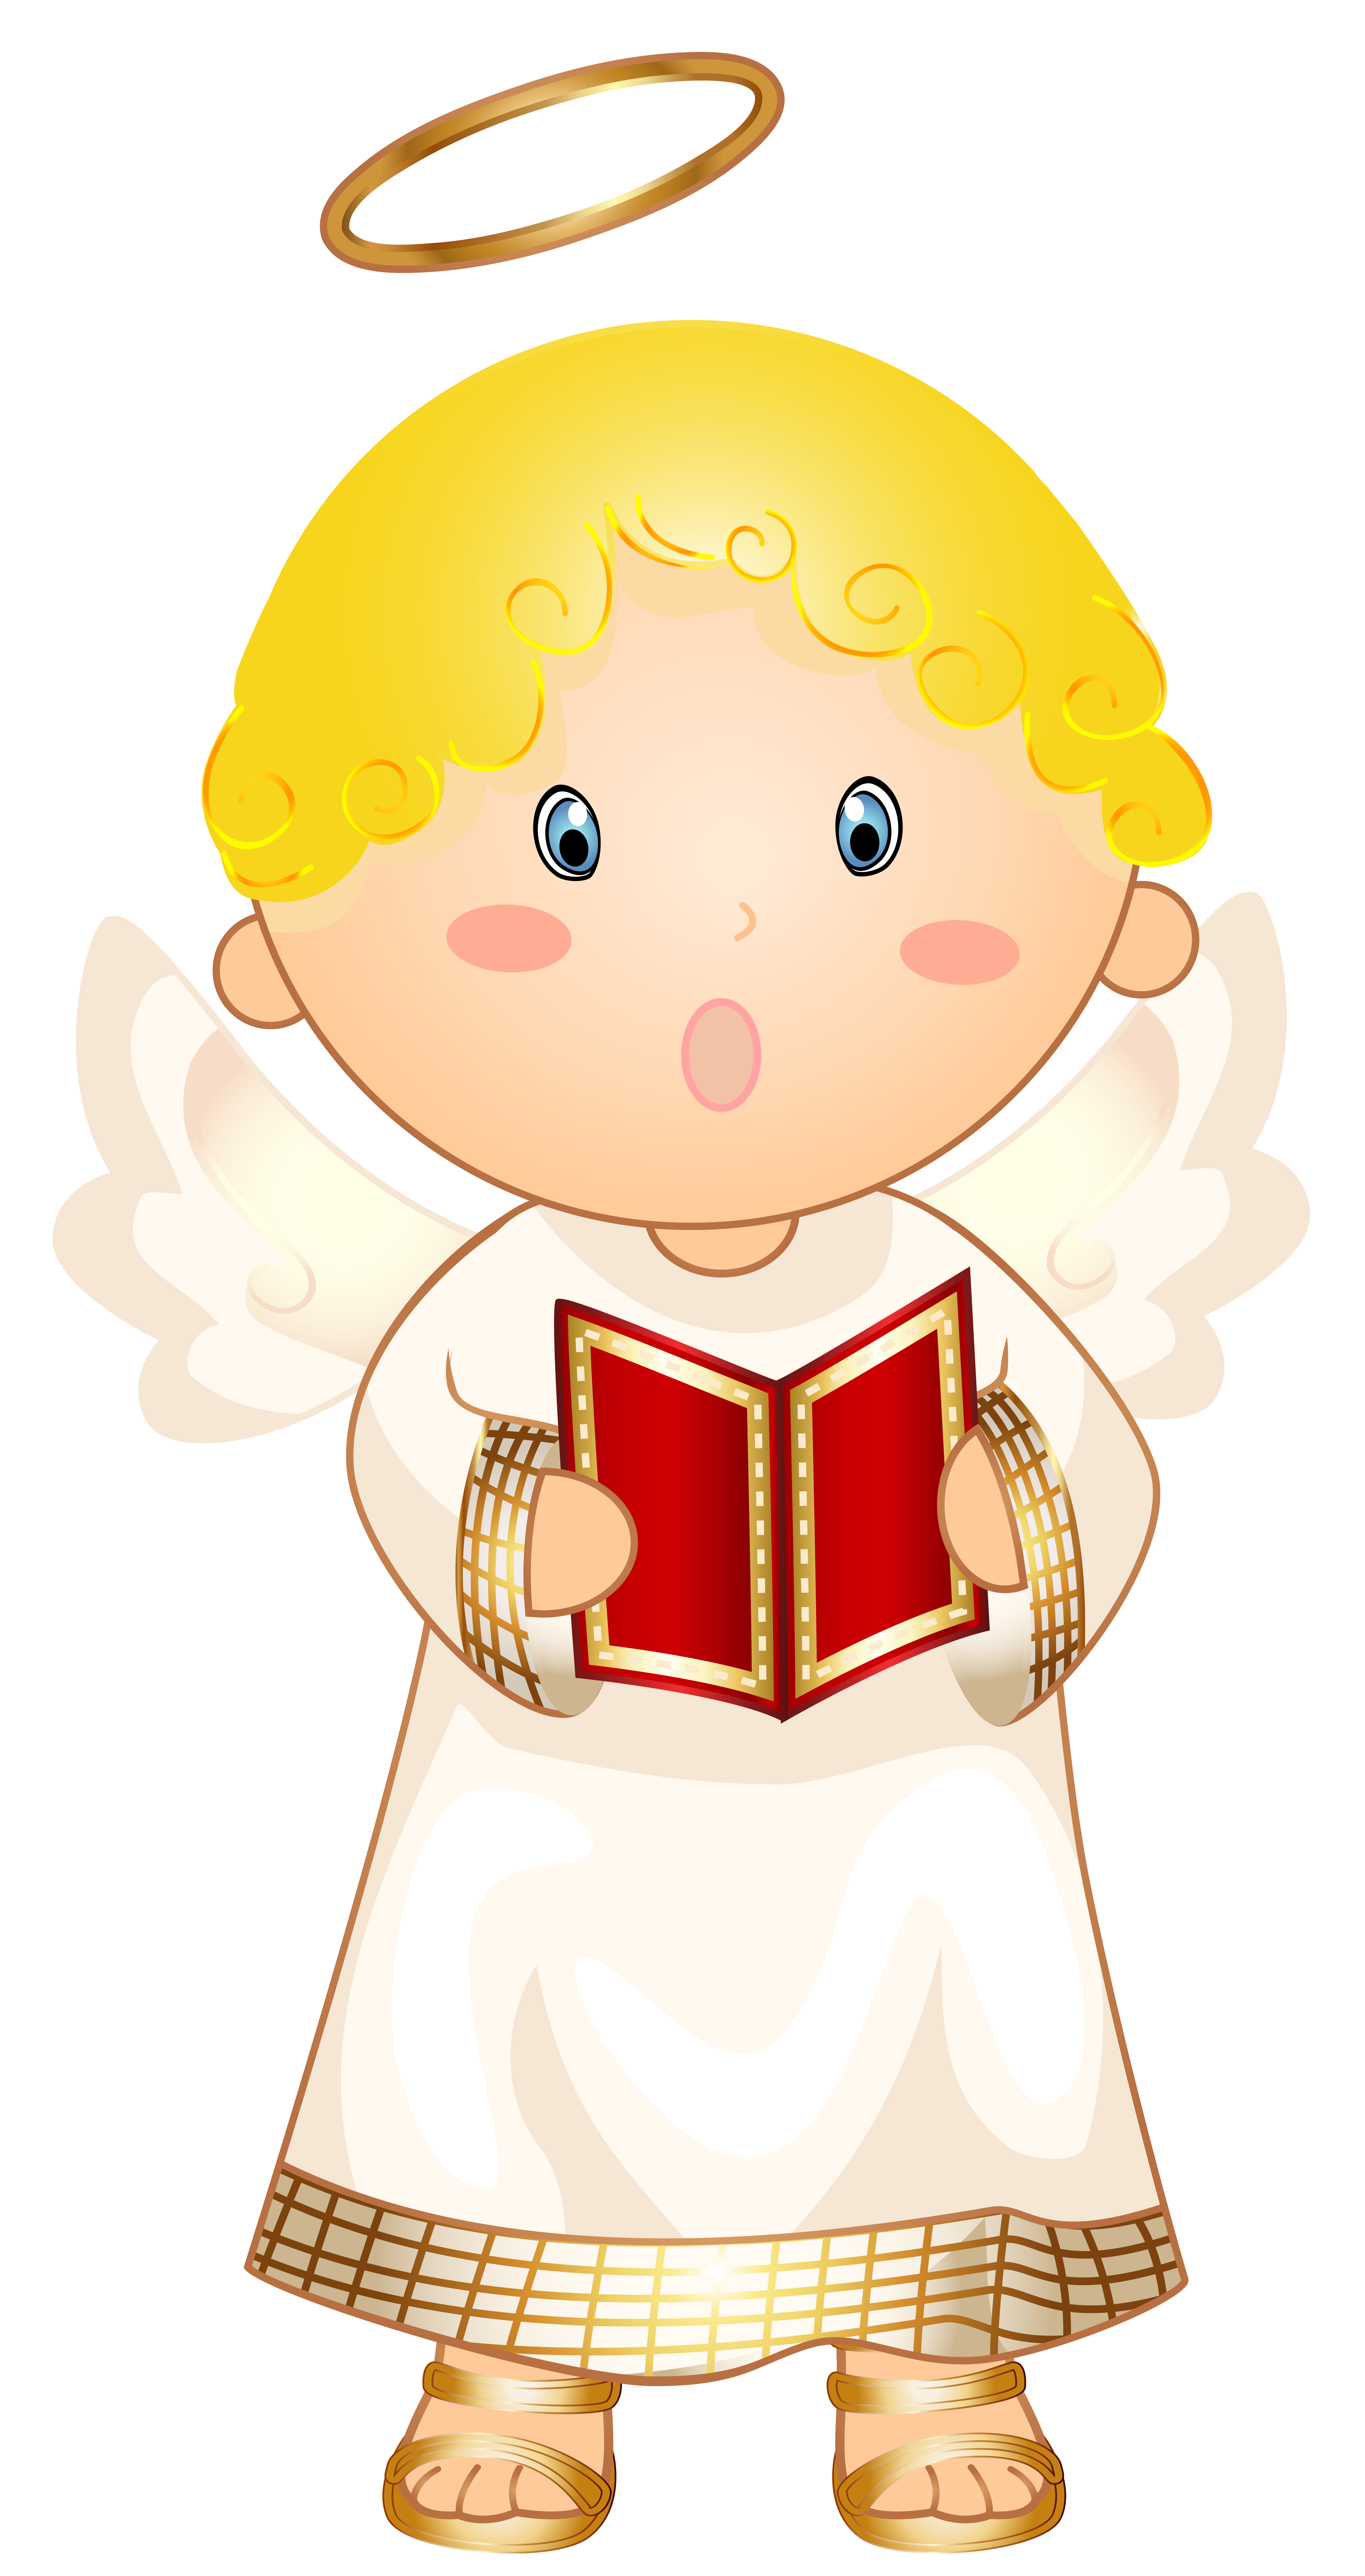 Angel halloween clipart jpg black and white library Little Angel Caroler Transparent PNG Clip Art Image | Gallery ... jpg black and white library